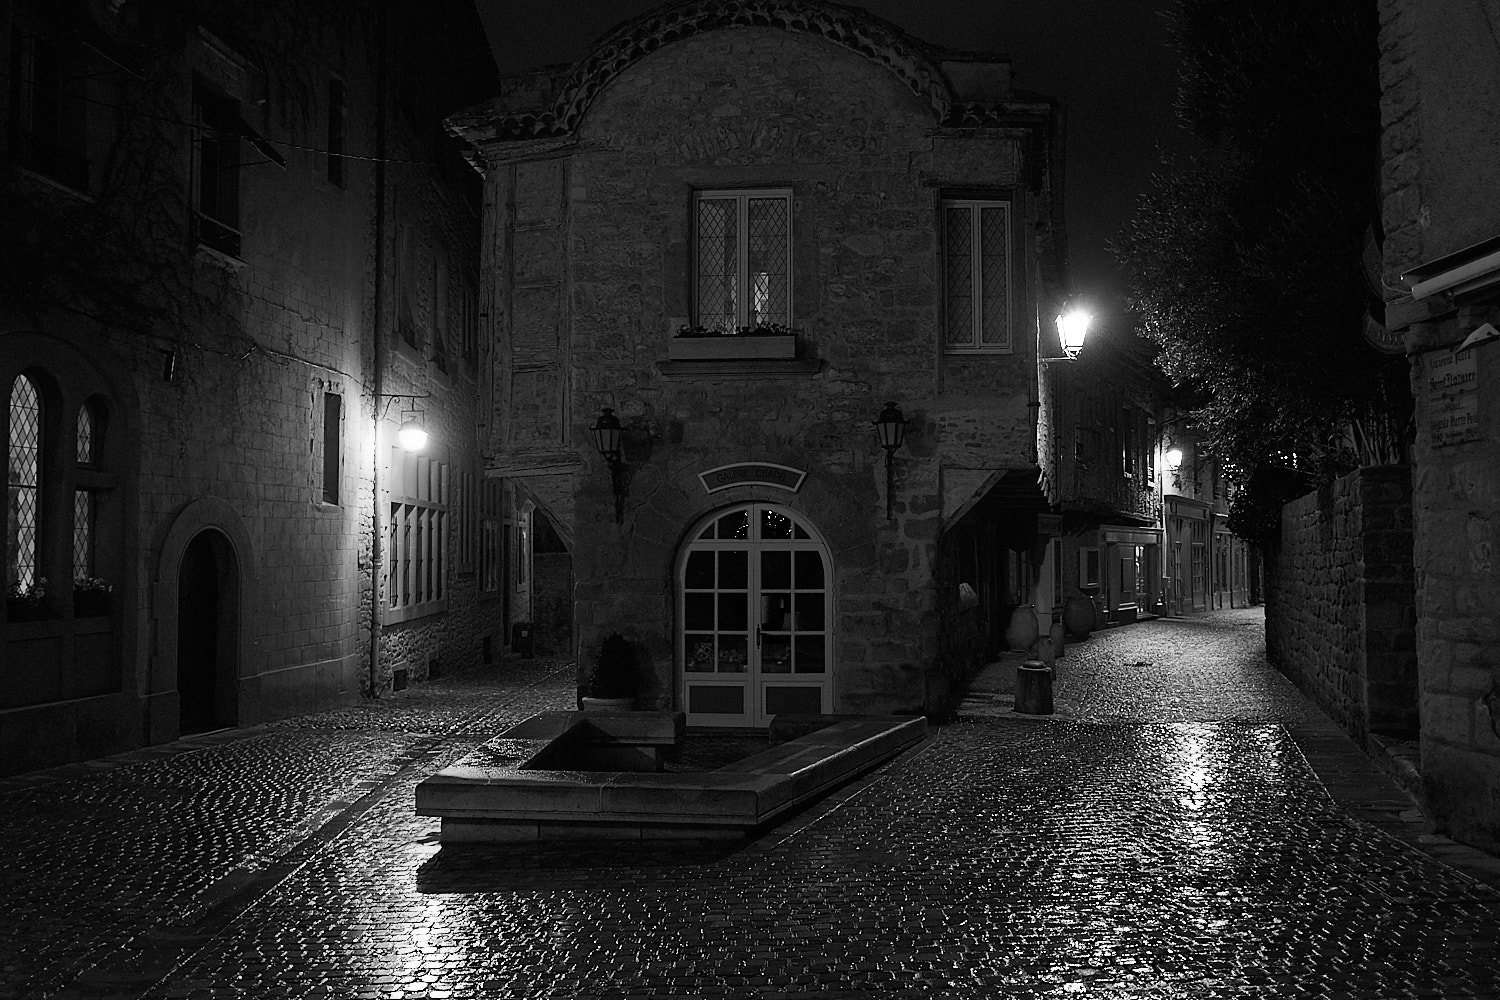 Night street view with wet coblestones after the rain in the fortress city of Carcassone in south France